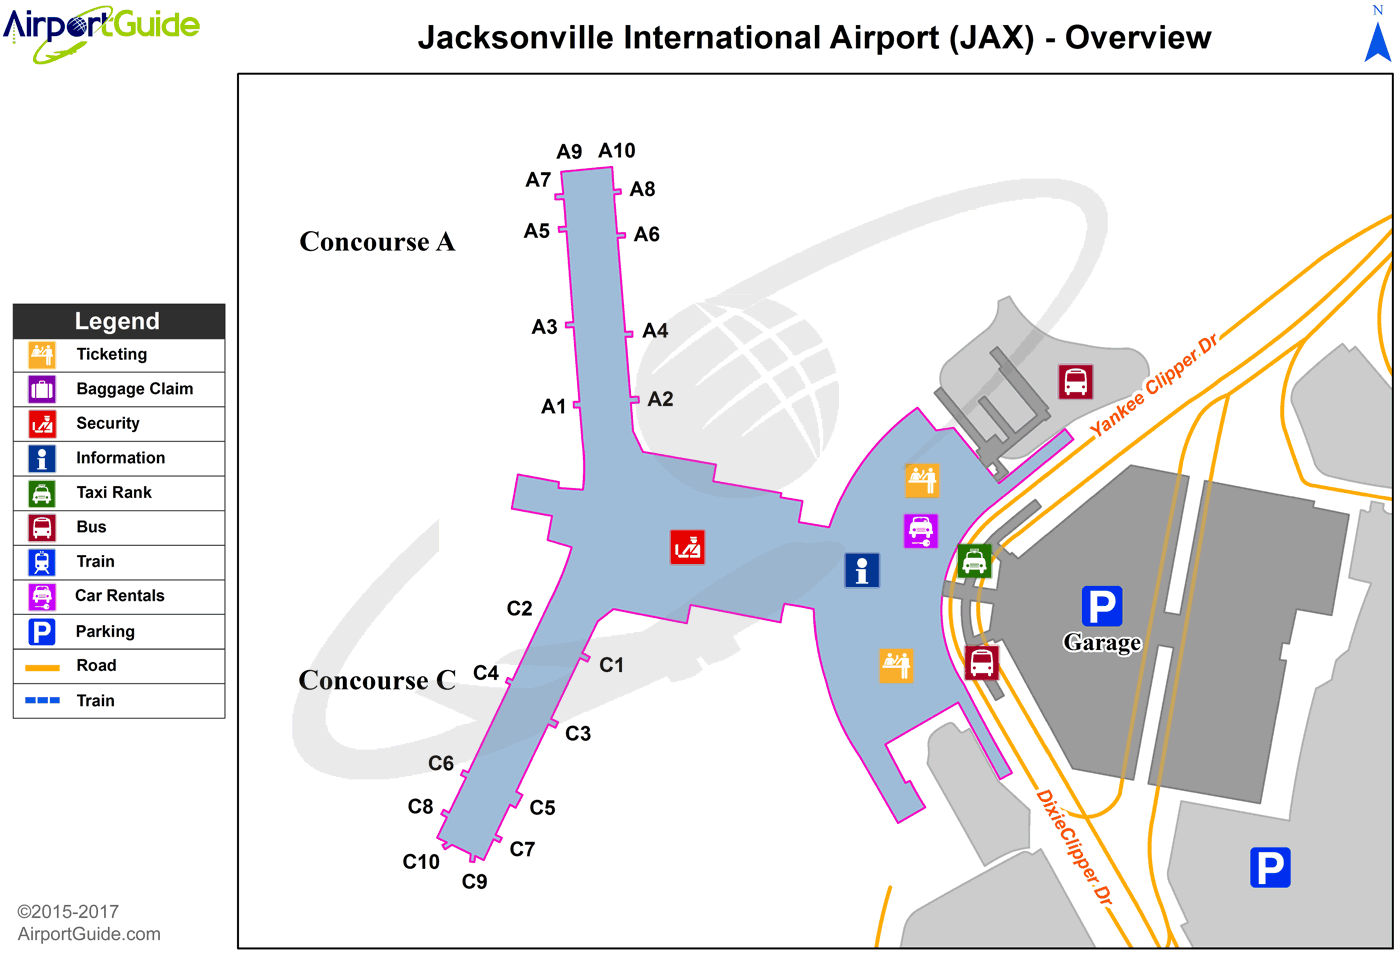 Jacksonville - Jacksonville International (JAX) Airport Terminal Map - Overview